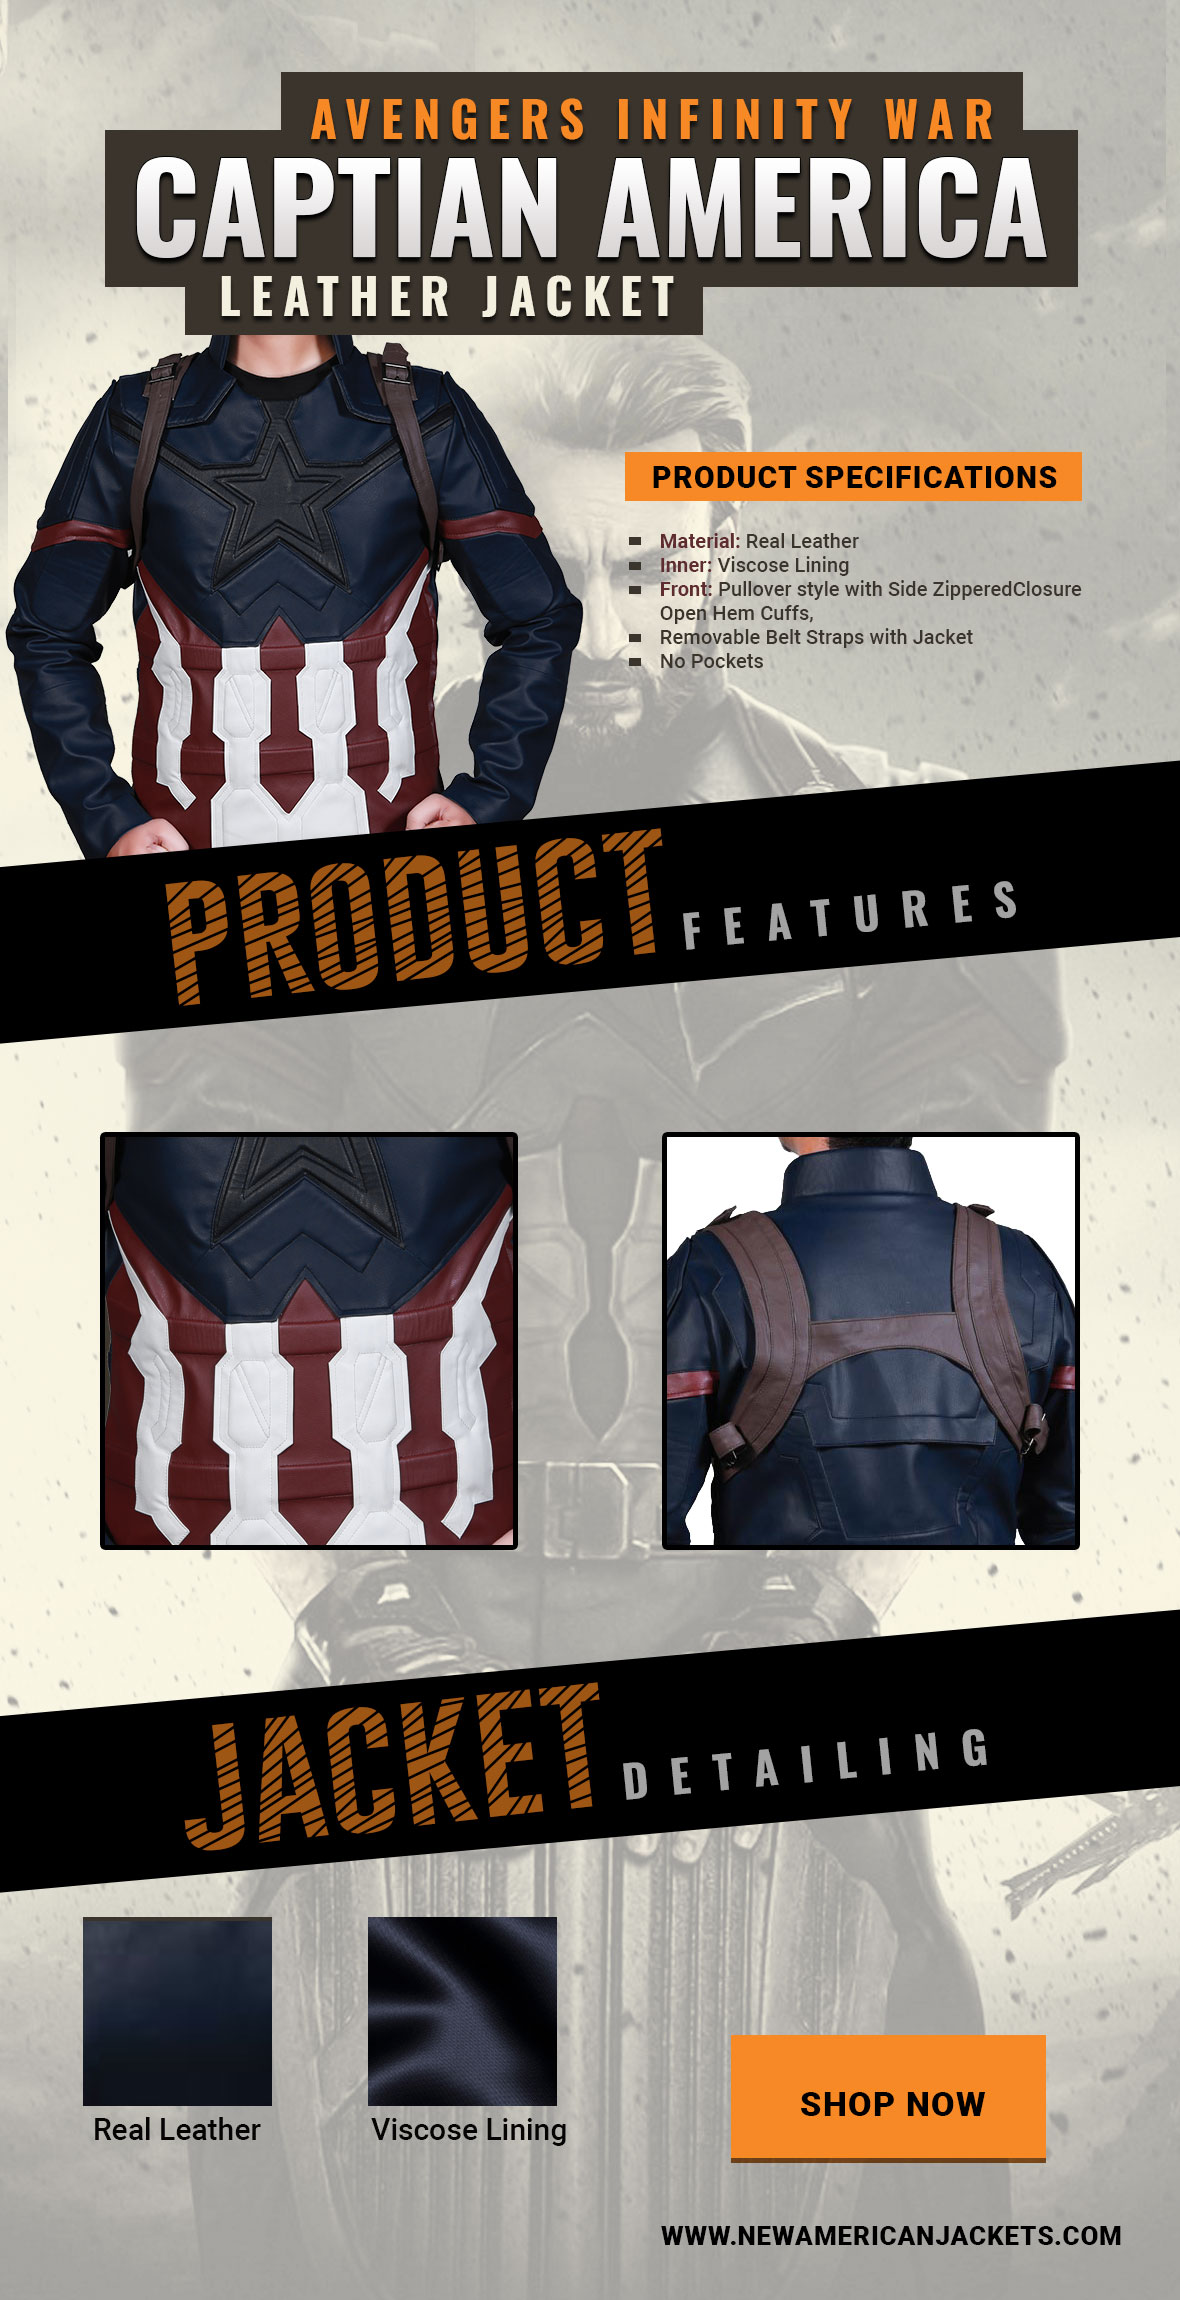 Avengers Infinity War Captain America Leather Jacket Infographic